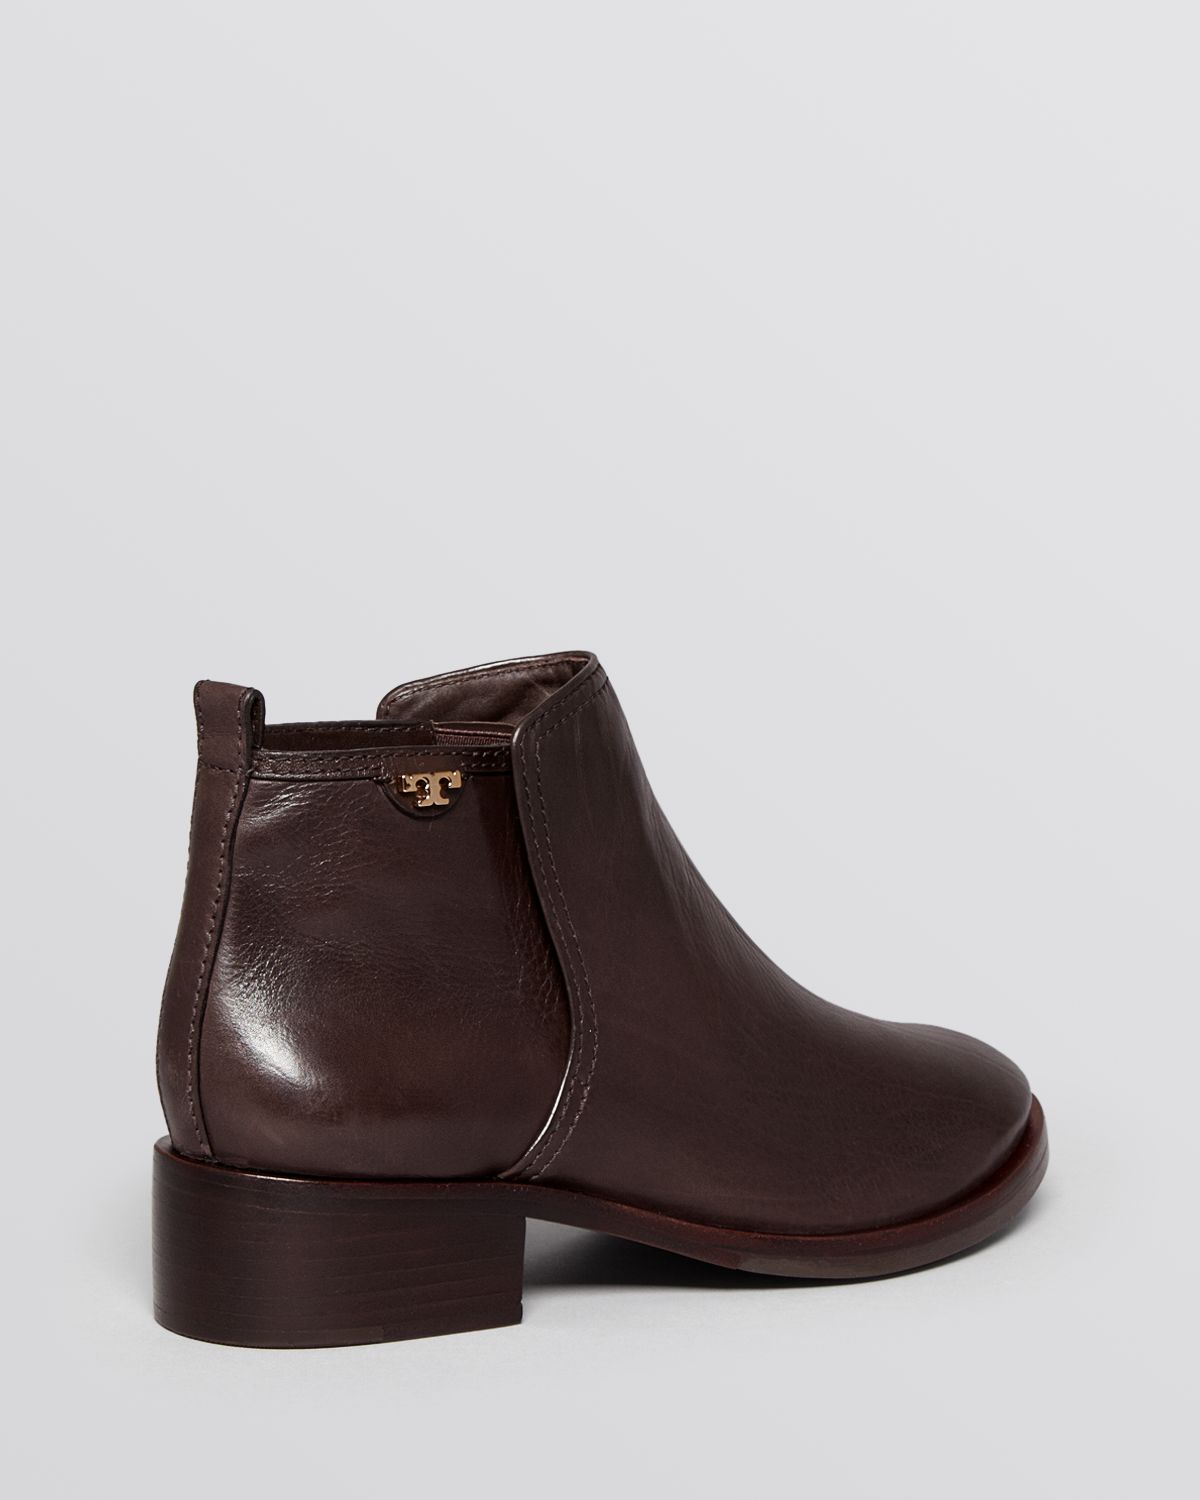 Tory burch Booties - Lexi in Brown | Lyst